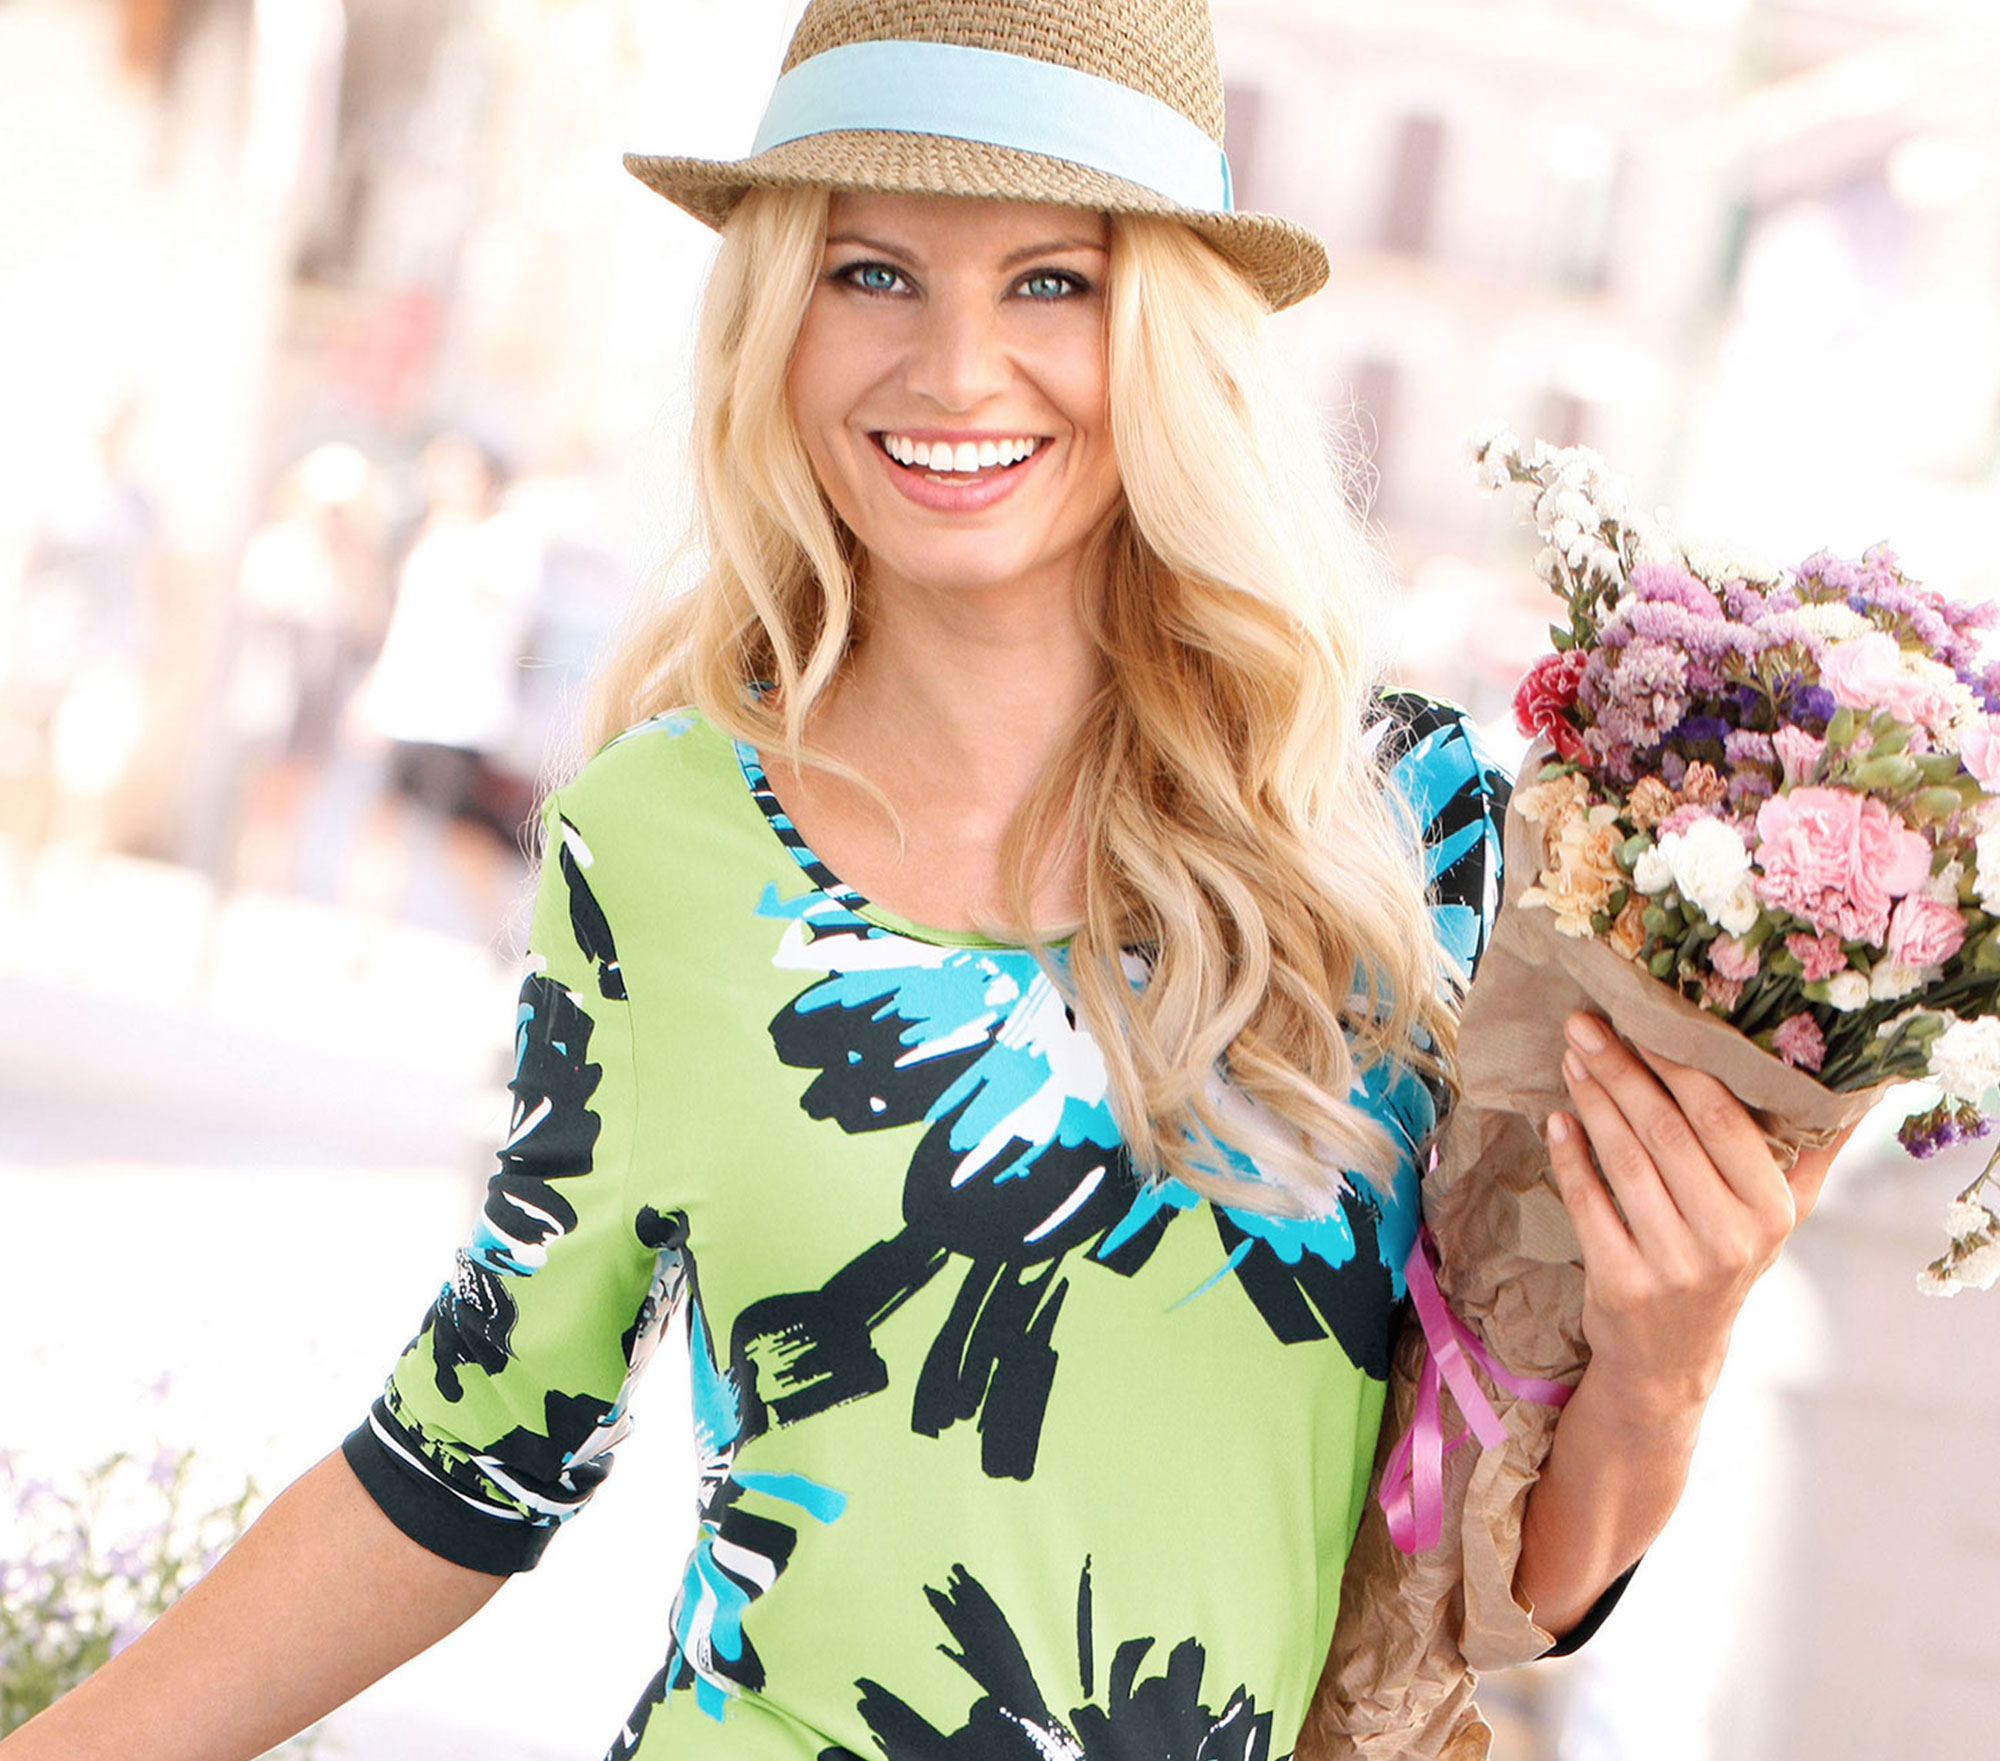 Go Green with fresh and colourful clothing